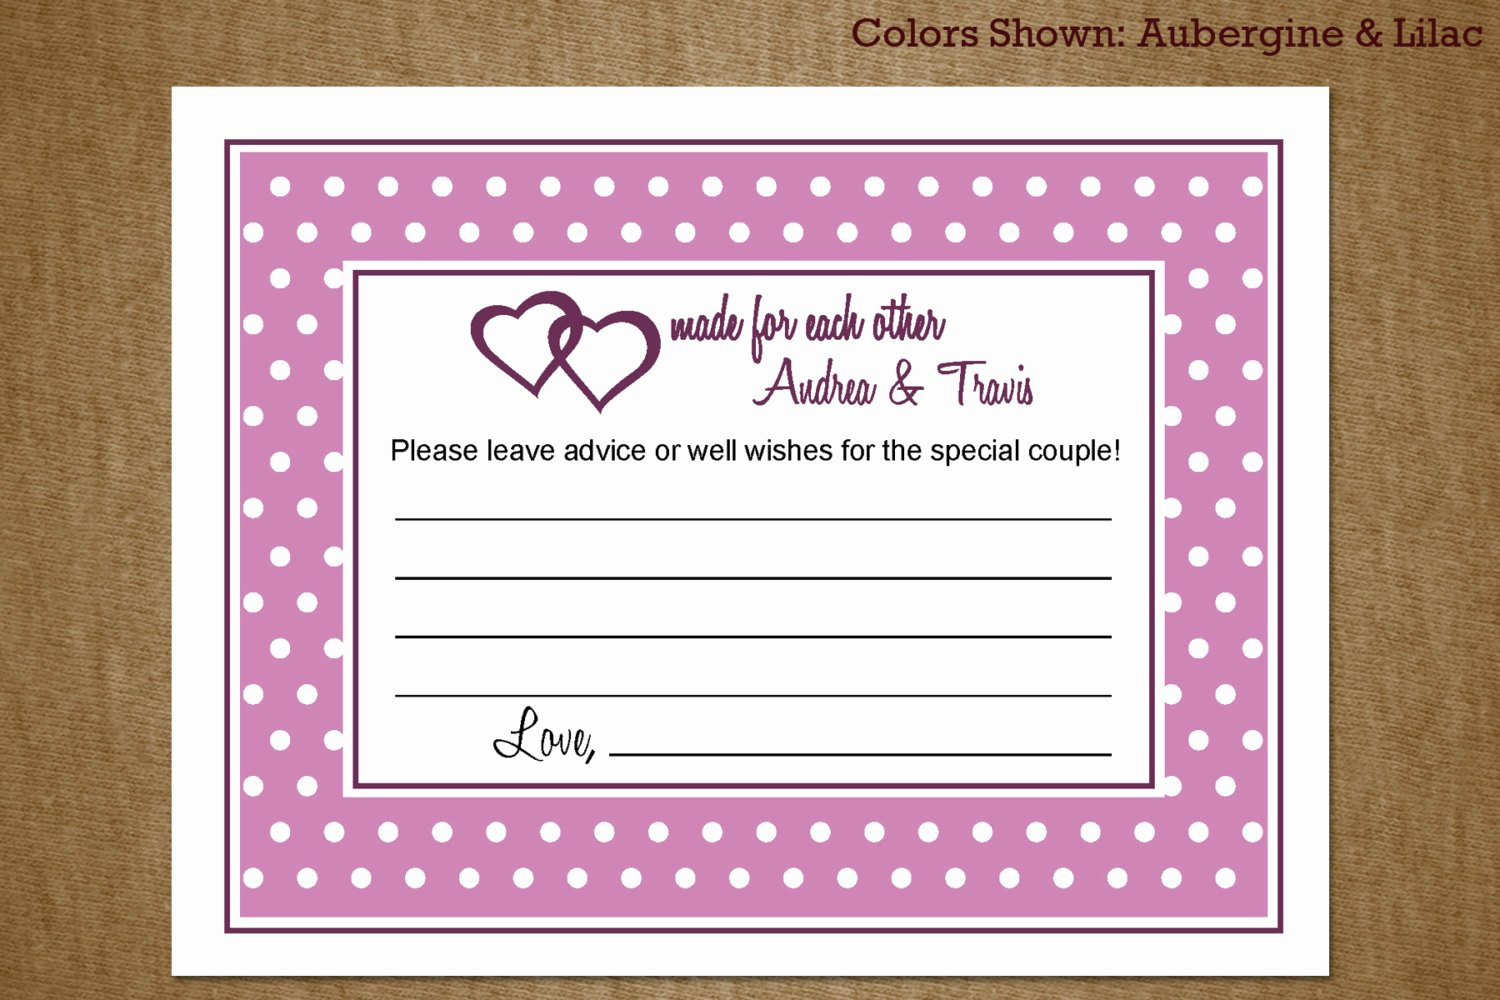 Bridal Shower Advice Cards Awesome Bridal Shower Advice Card and Well Wishes by